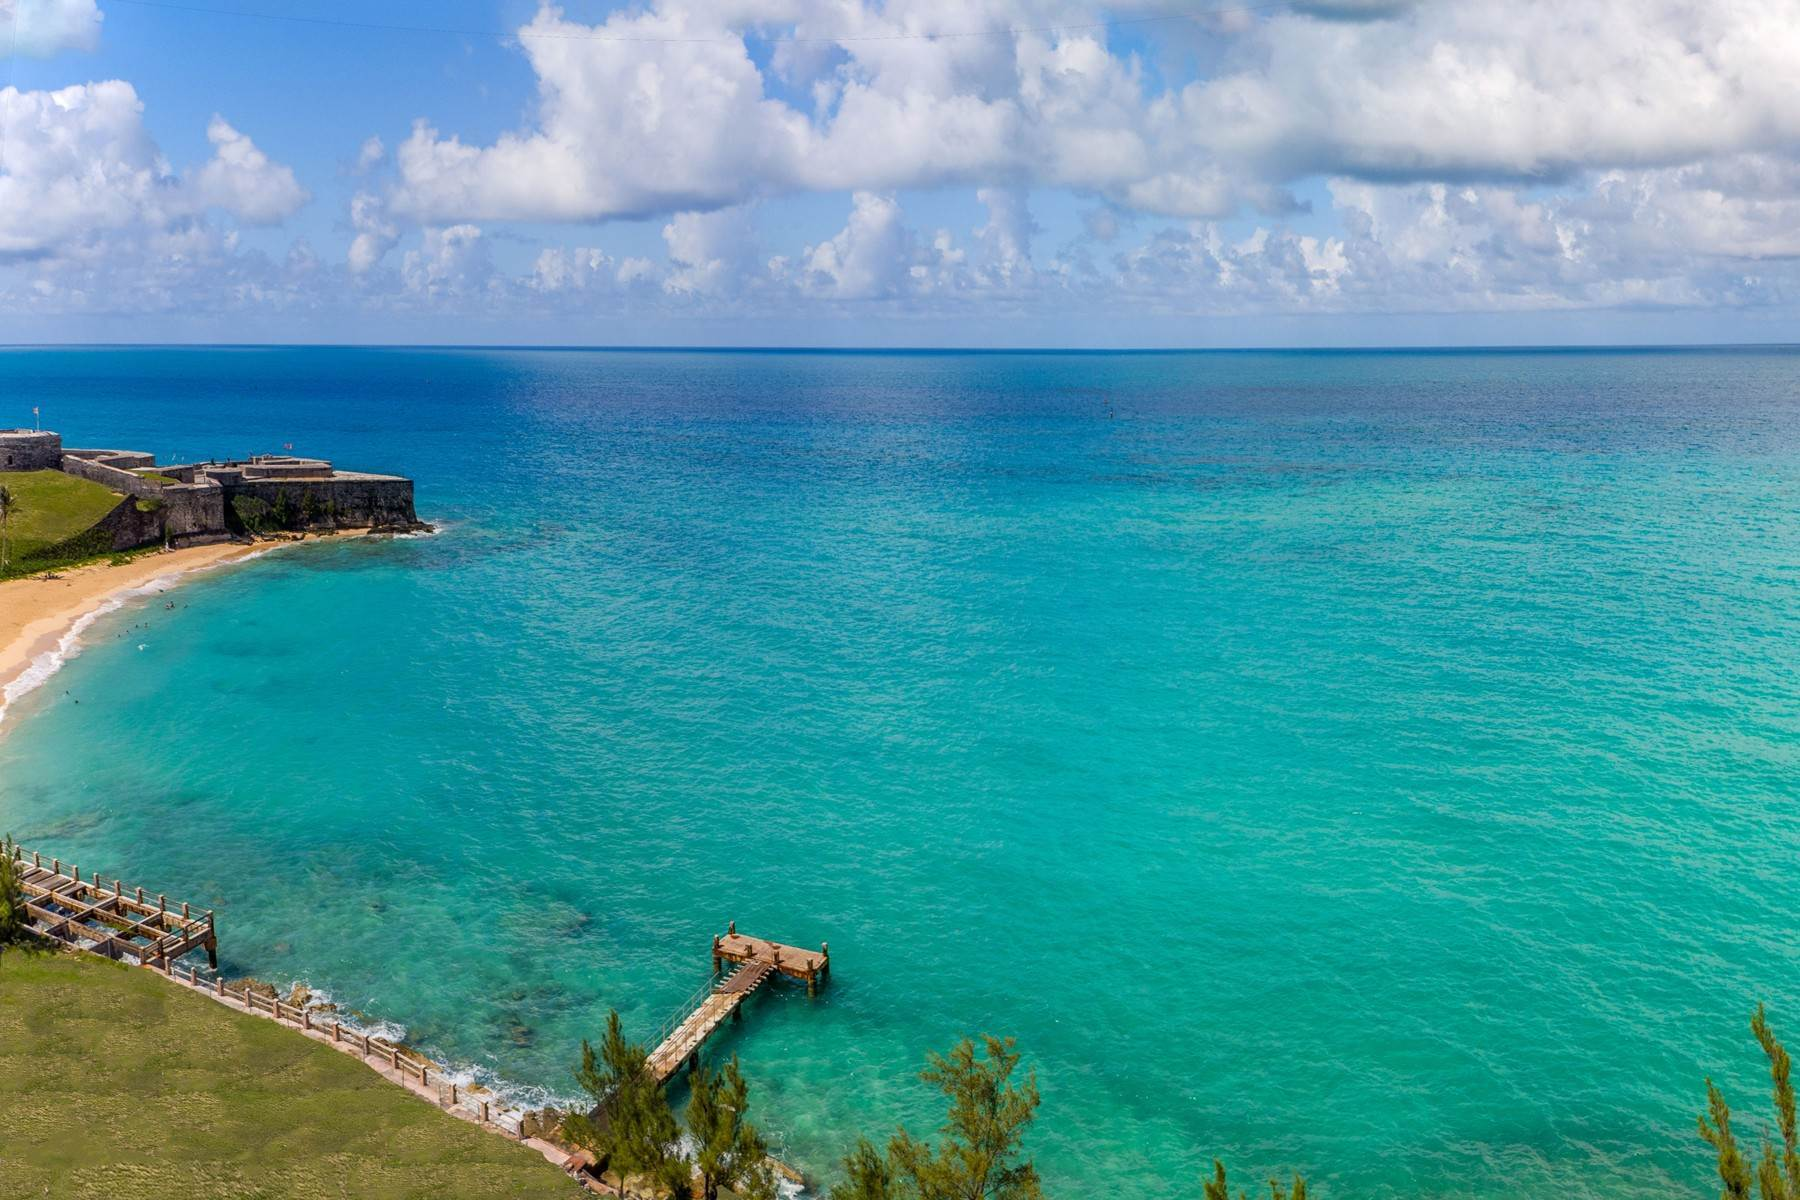 5. Condo / Townhouse / Flat for Sale at St. Regis Bermuda Residences - Gates Bay PHB St. Catherine's Beach St Georges Parish, GE03 Bermuda